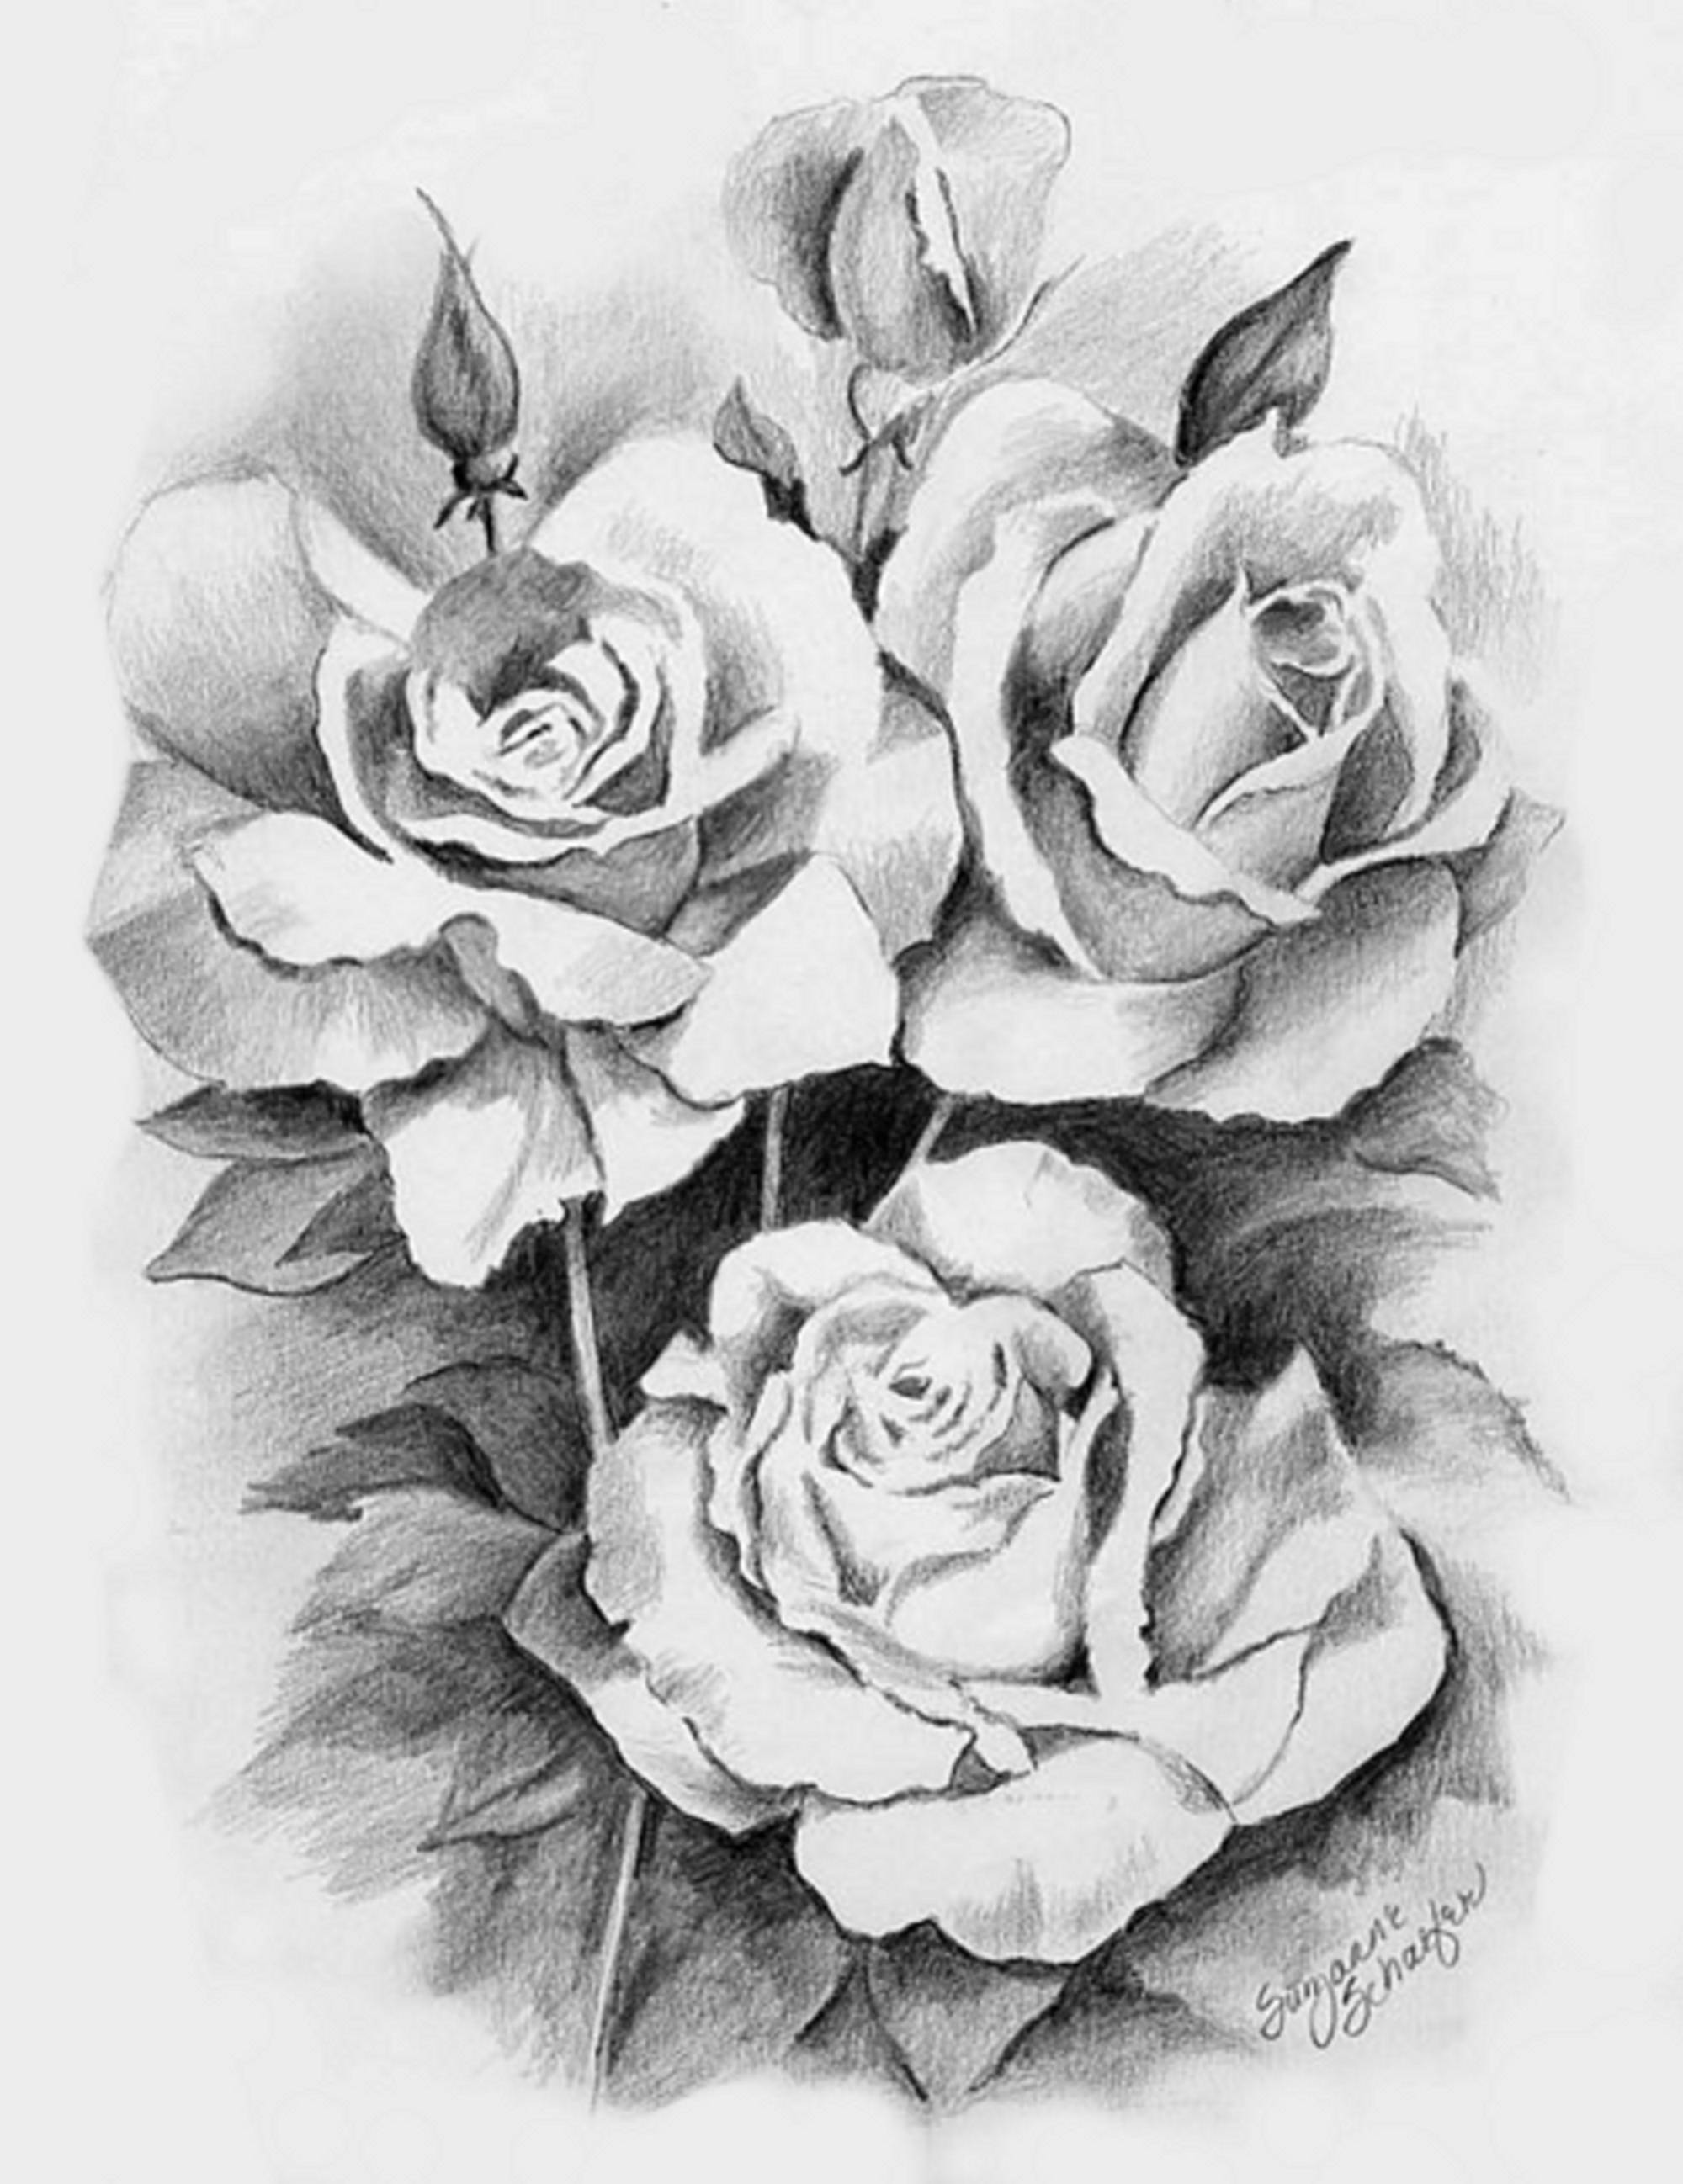 Drawn rose hard Pencil Flower Realistic Drawings Color